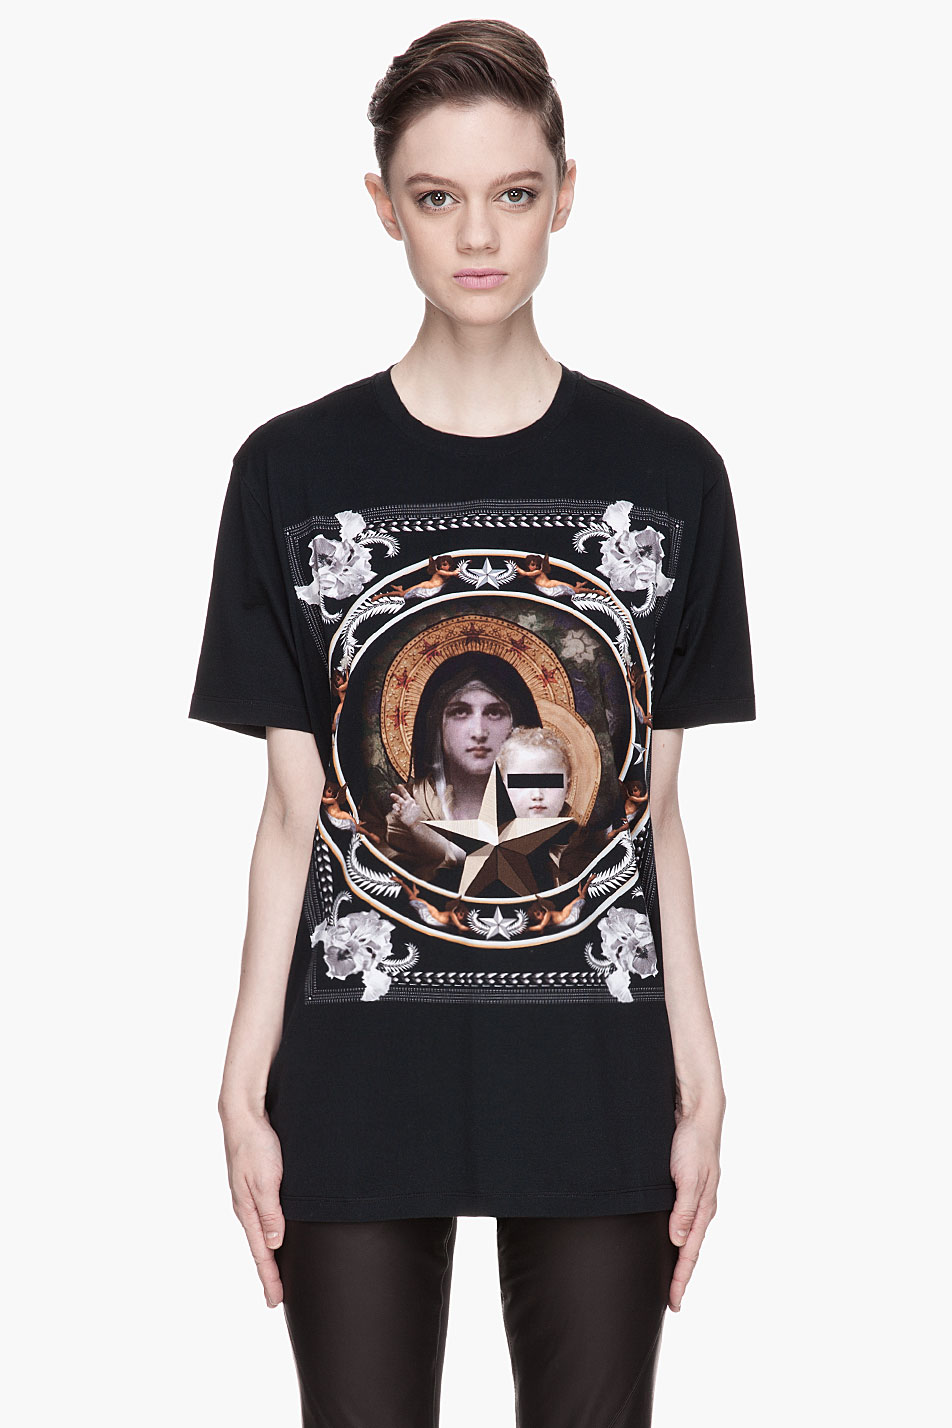 Womens MARISSA T-Shirt Madonna Browse Cheap Price Cost Sale Online Cheap Price Outlet AtY5KHEP